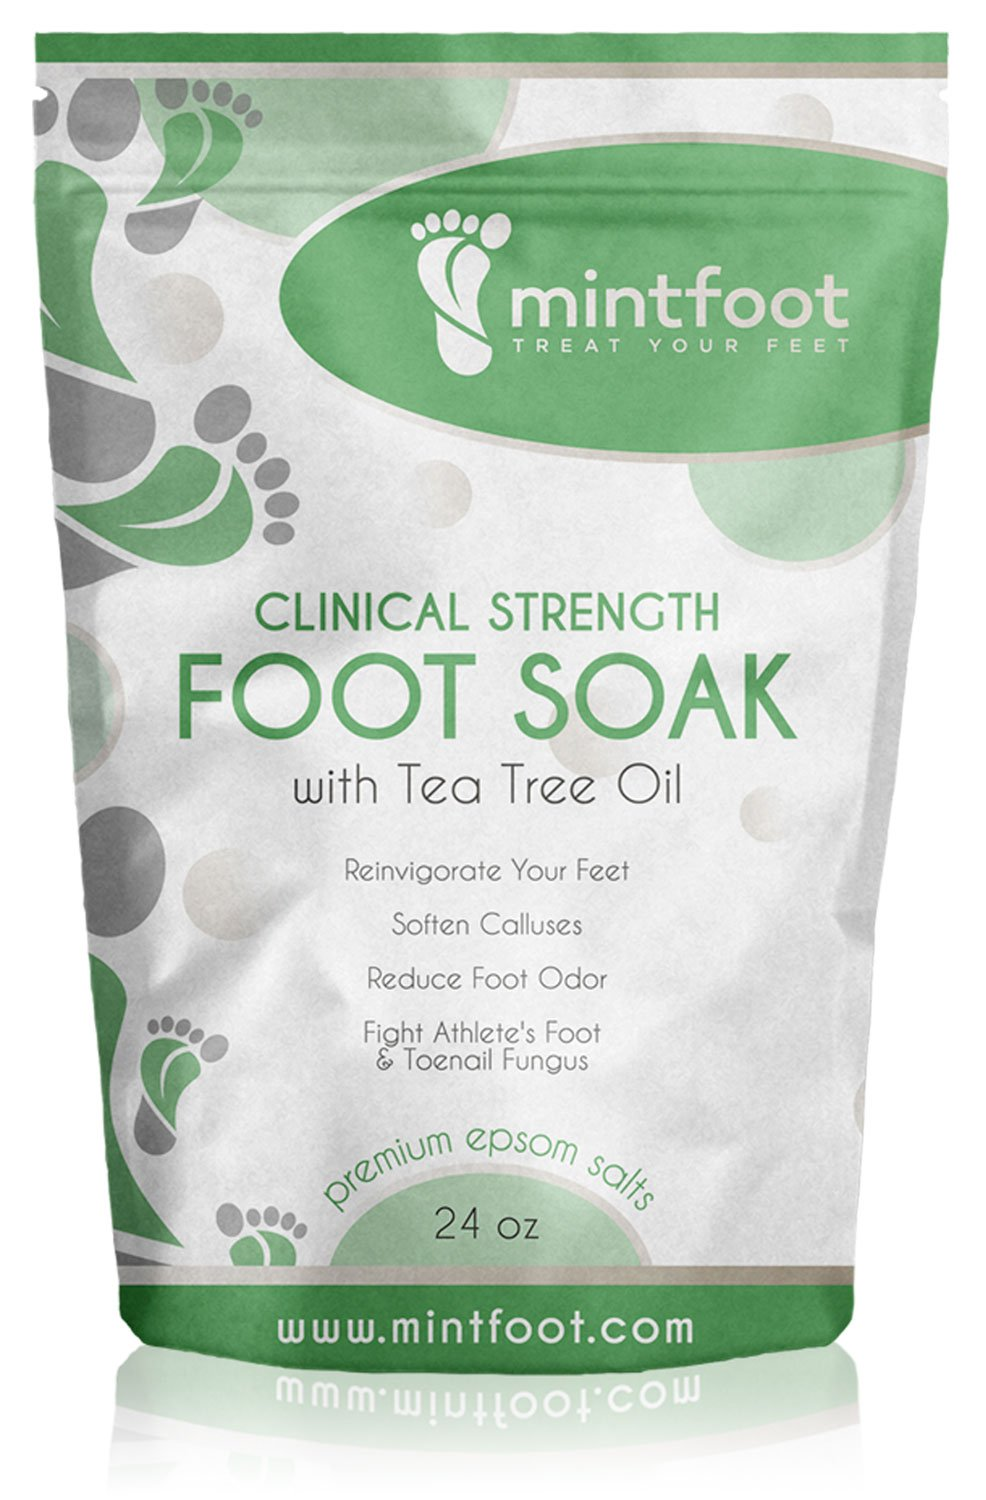 Mintfoot 24oz Clinical Strength Foot Soak with Tea Tree Oil & Epsom Salts - Fights Athlete's Foot & Toenail Fungus - Reinvigorate Your Feet